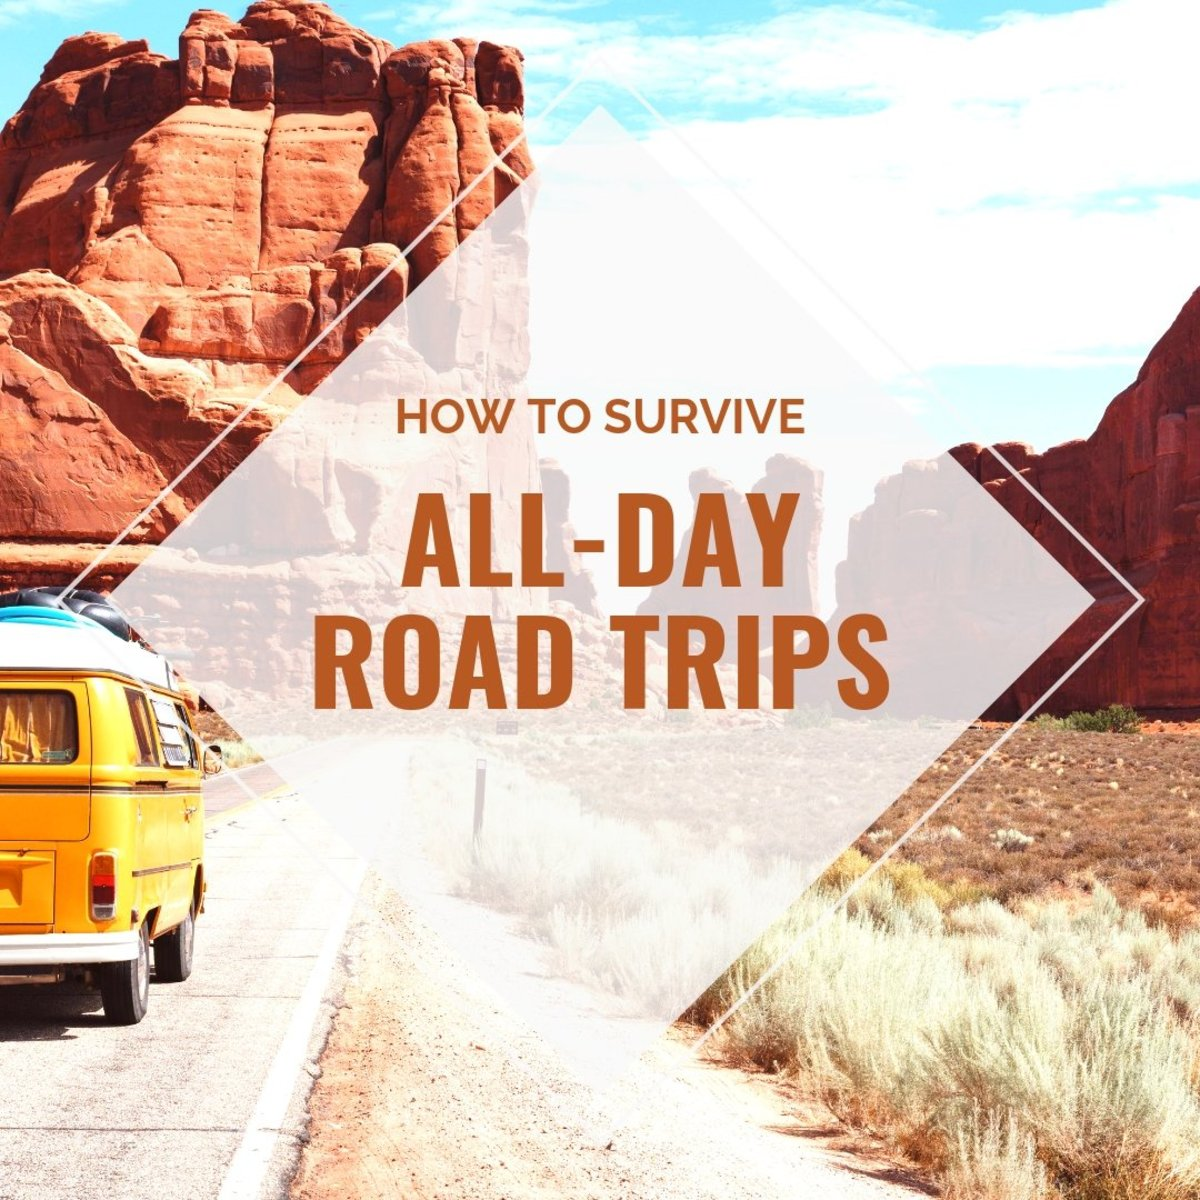 Going on a road trip that's 10+ hours both ways? Read this article for the best tips and tricks for surviving those long drives and make the most of your time in the car!